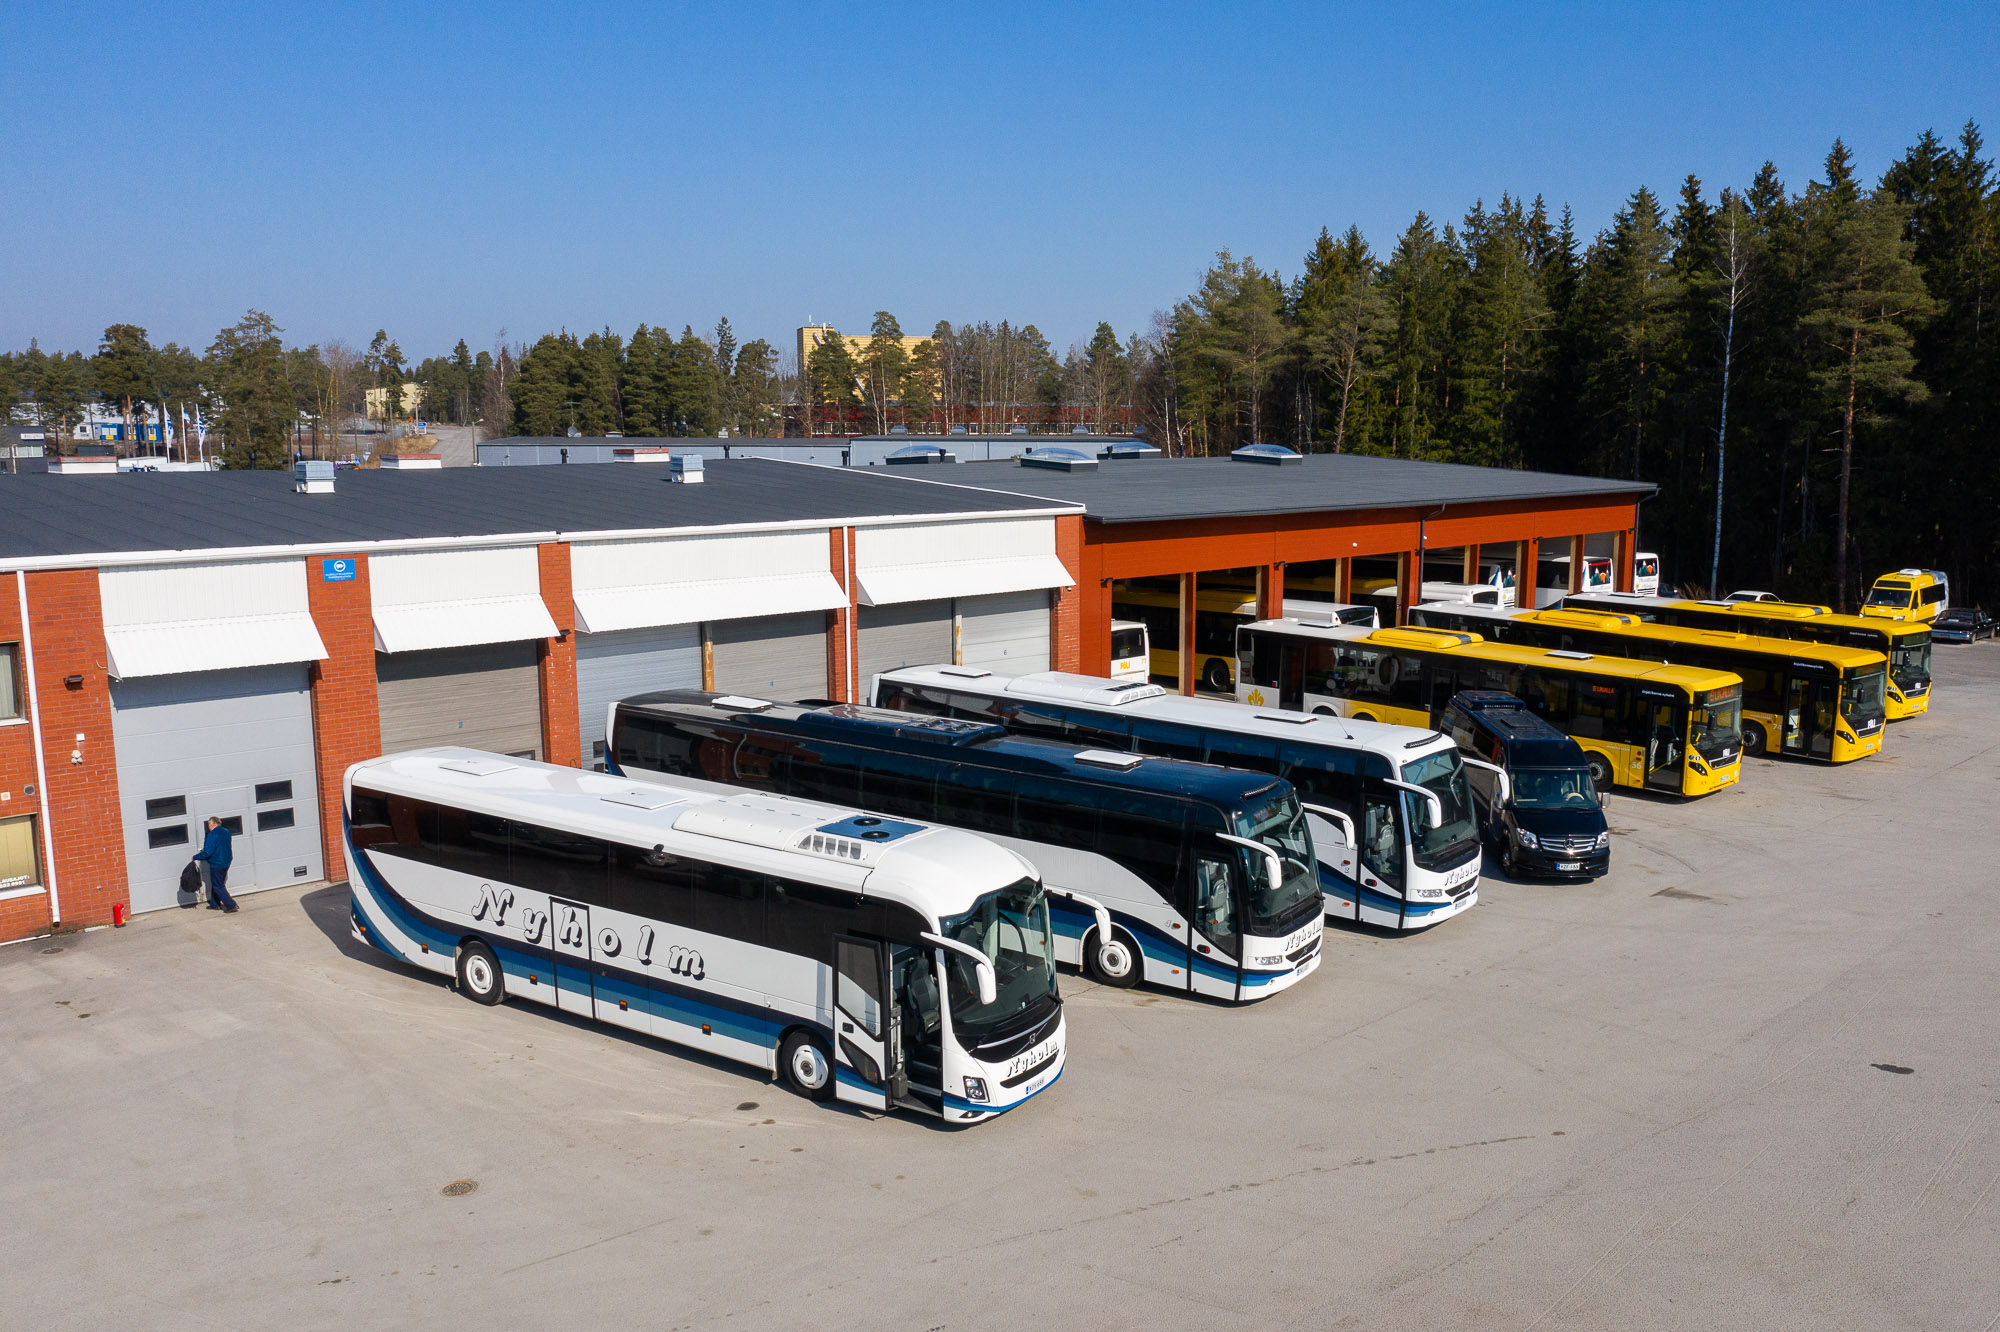 Tilausliikenne Nyholm bussit